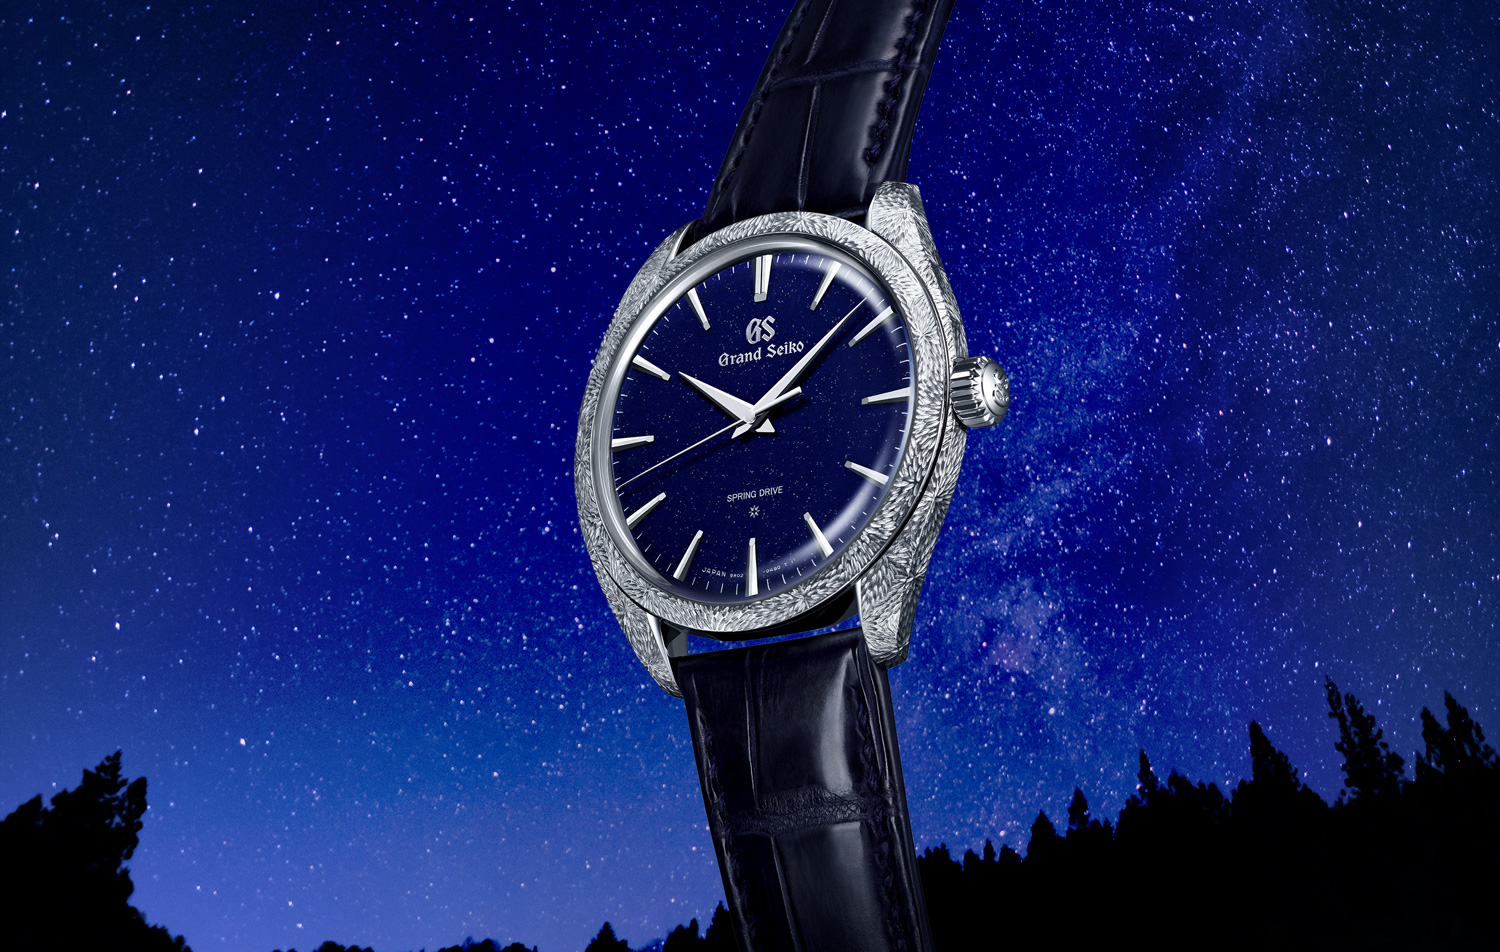 Grand Seiko presents a Spring Drive masterpiece that captures the ever-changing yet eternal nature of the sky at night.